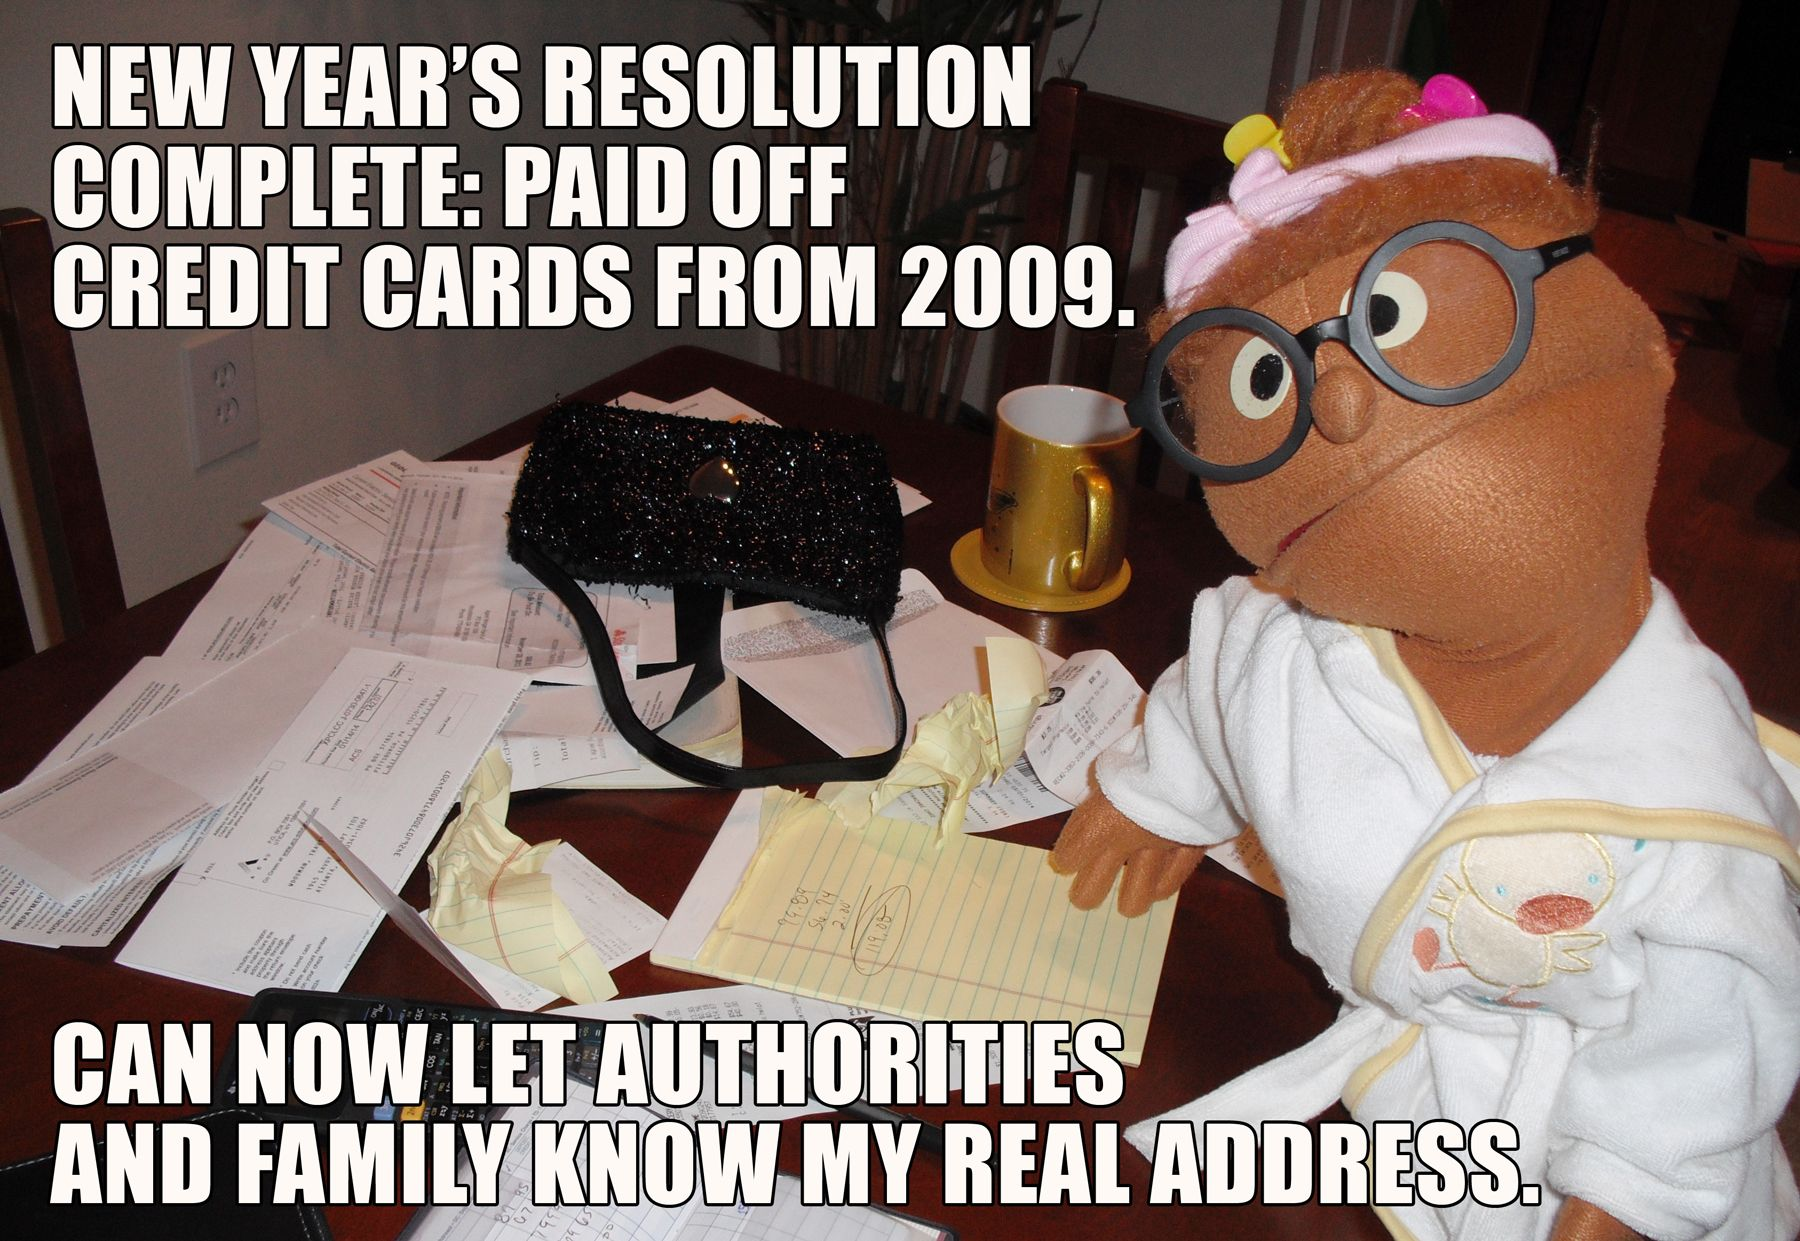 Pin by Travis Woodman on Comedy New year resolution meme